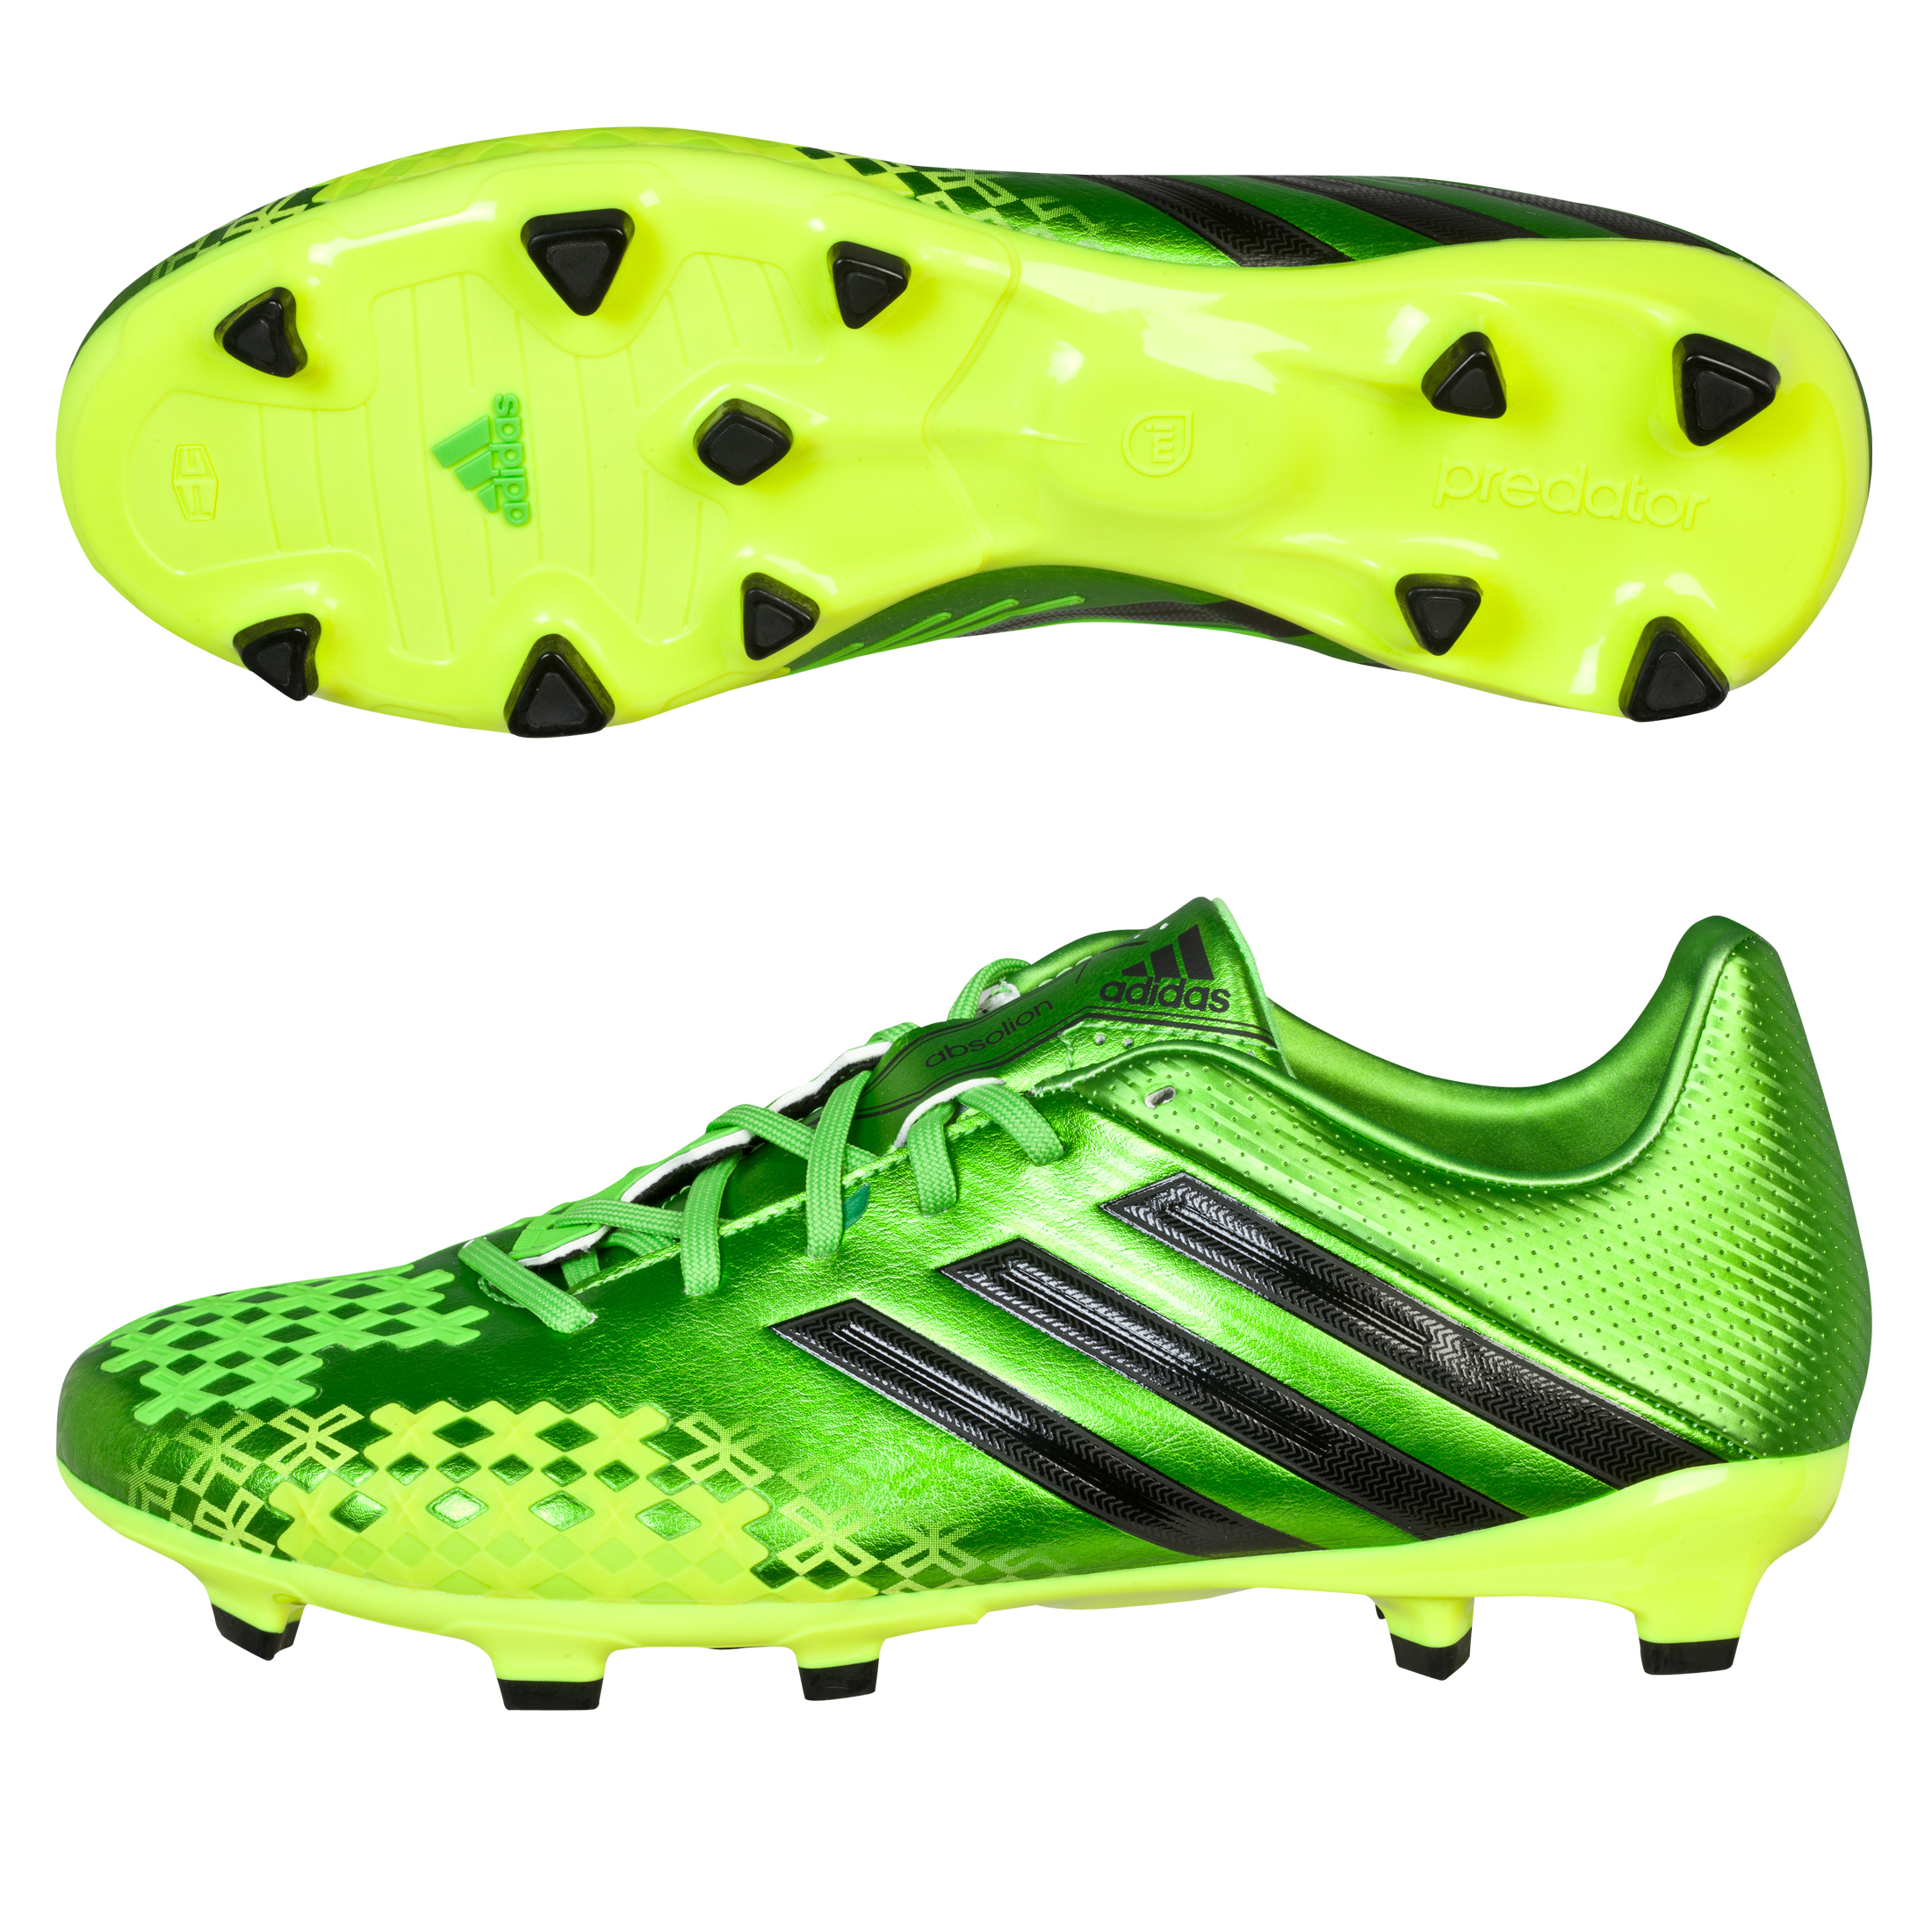 Adidas Predator Absolion LZ TRX Firm Ground Football Boots Green